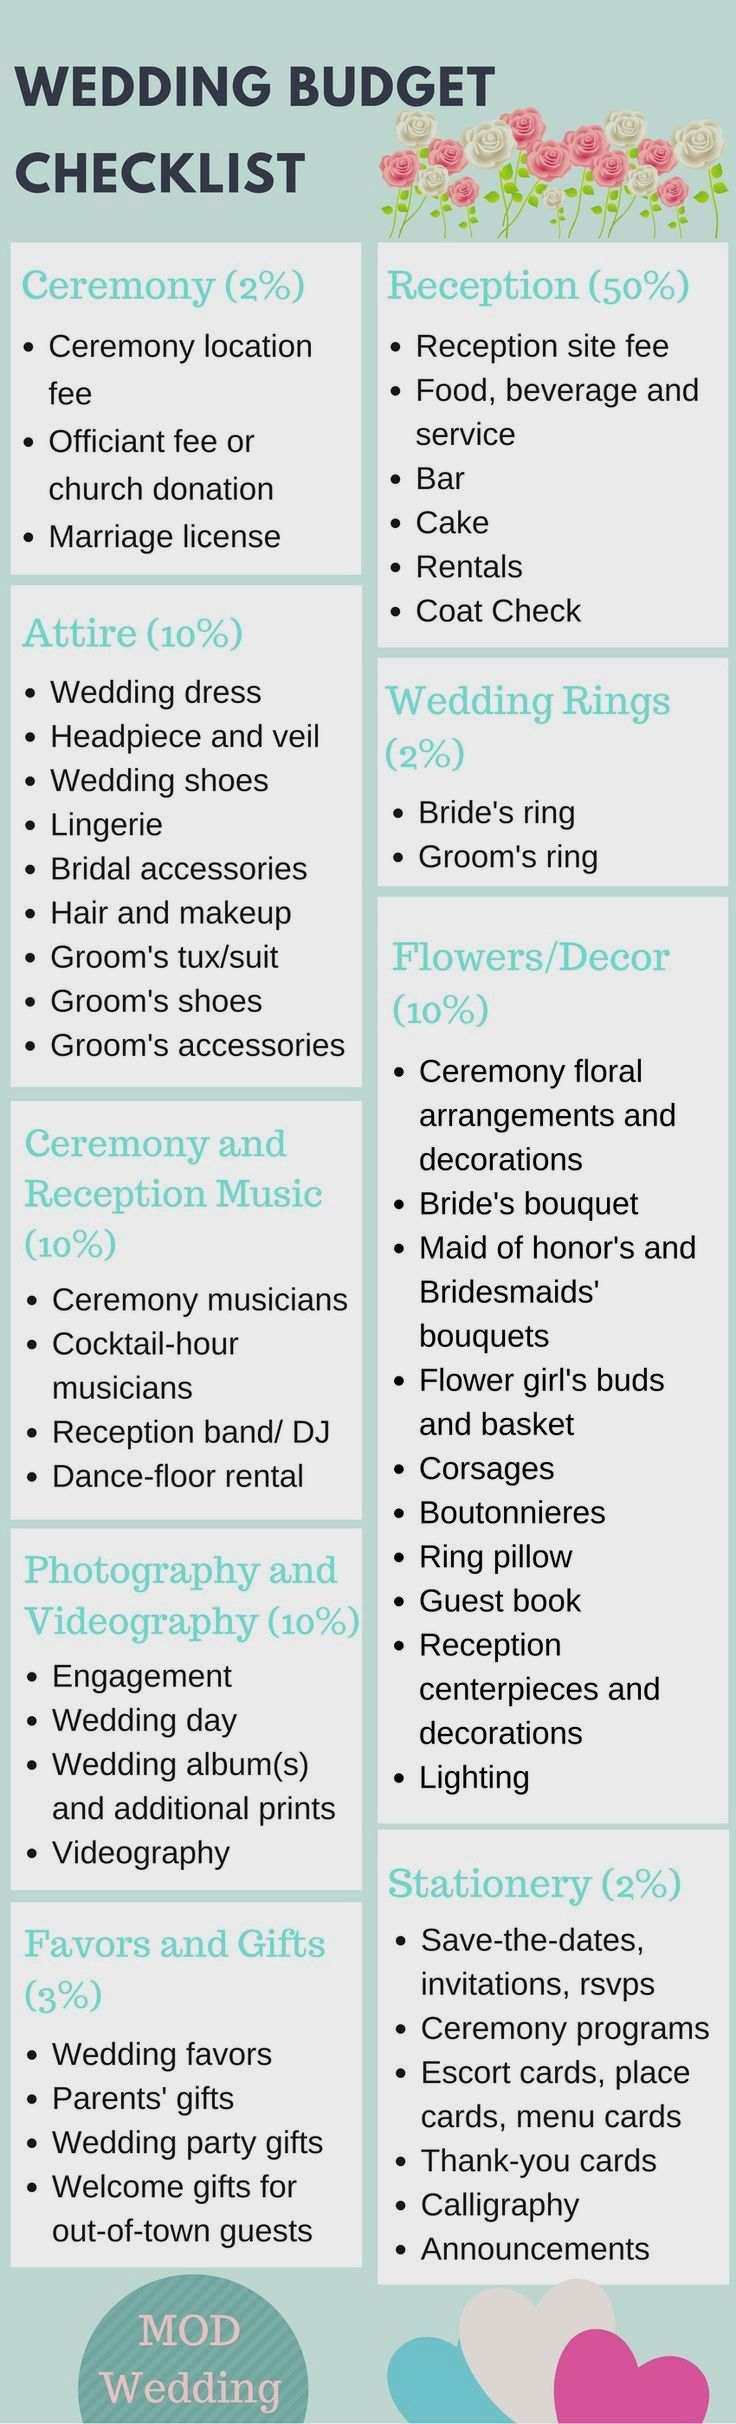 Pin On Budget Weddings